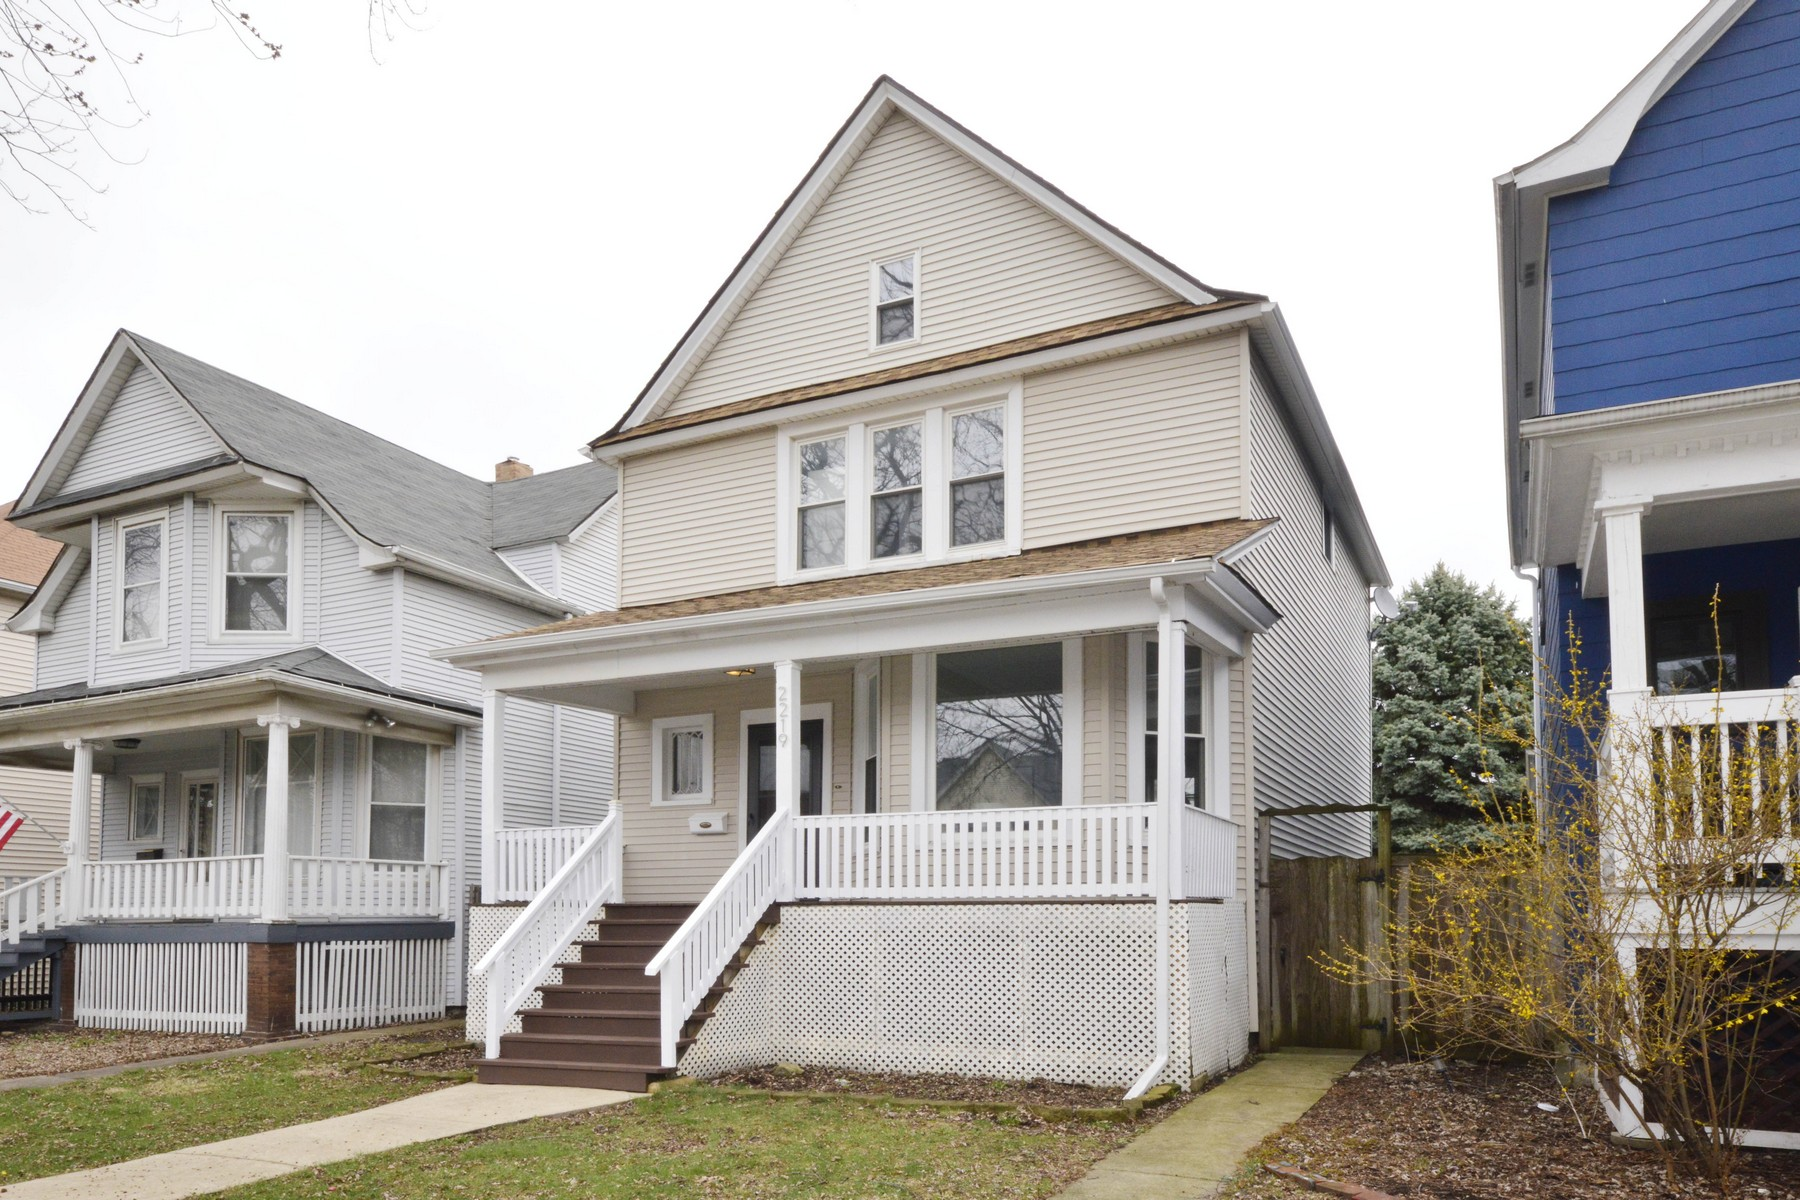 Single Family Home for Sale at Newly-Renovated Three Bedroom Home 2219 N Monticello Avenue Chicago, Illinois 60647 United States